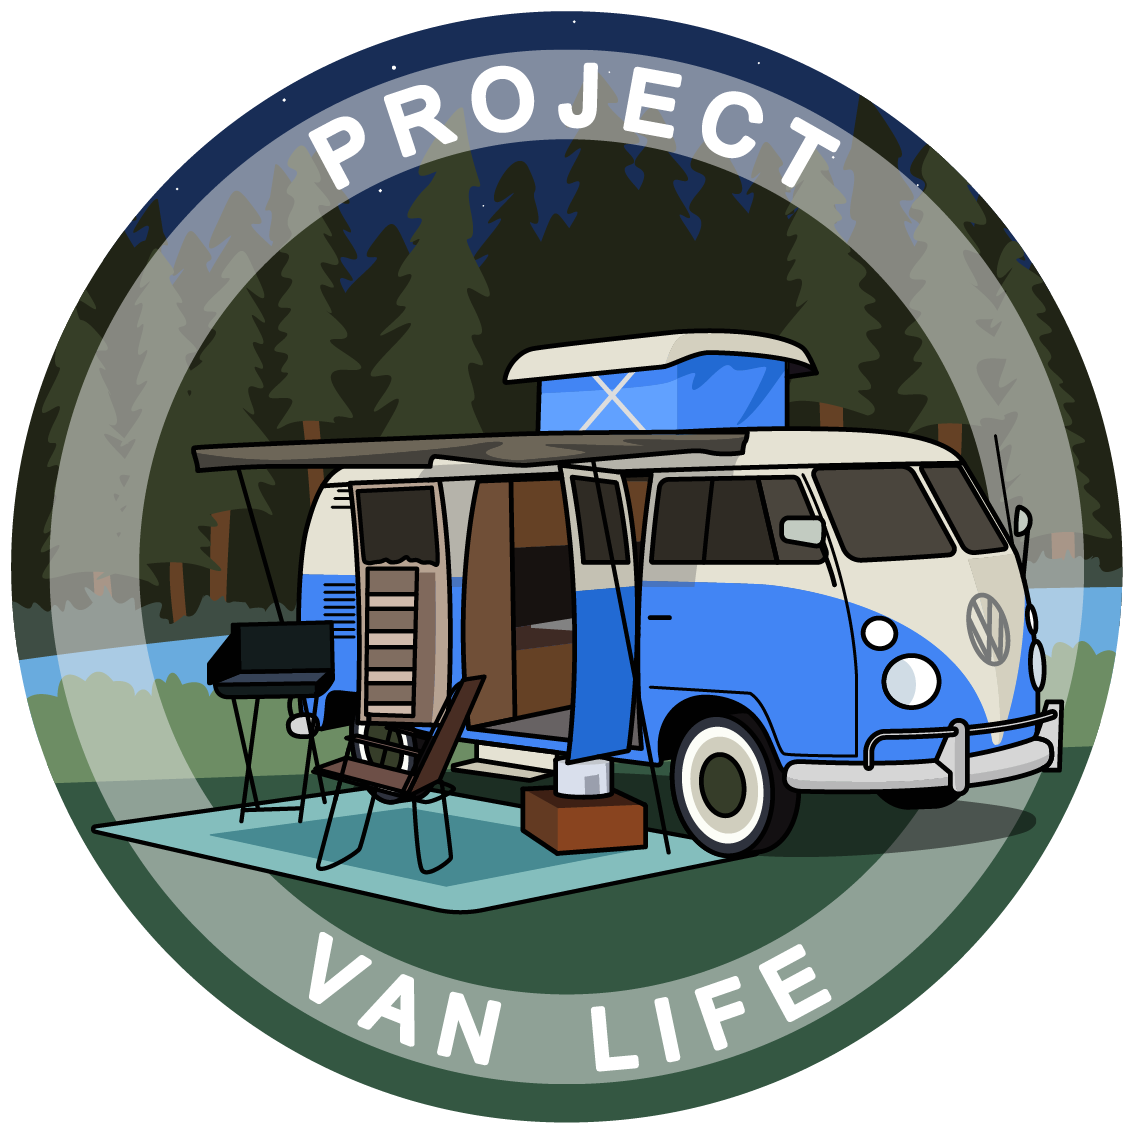 Van life Forum | ProjectVanlife